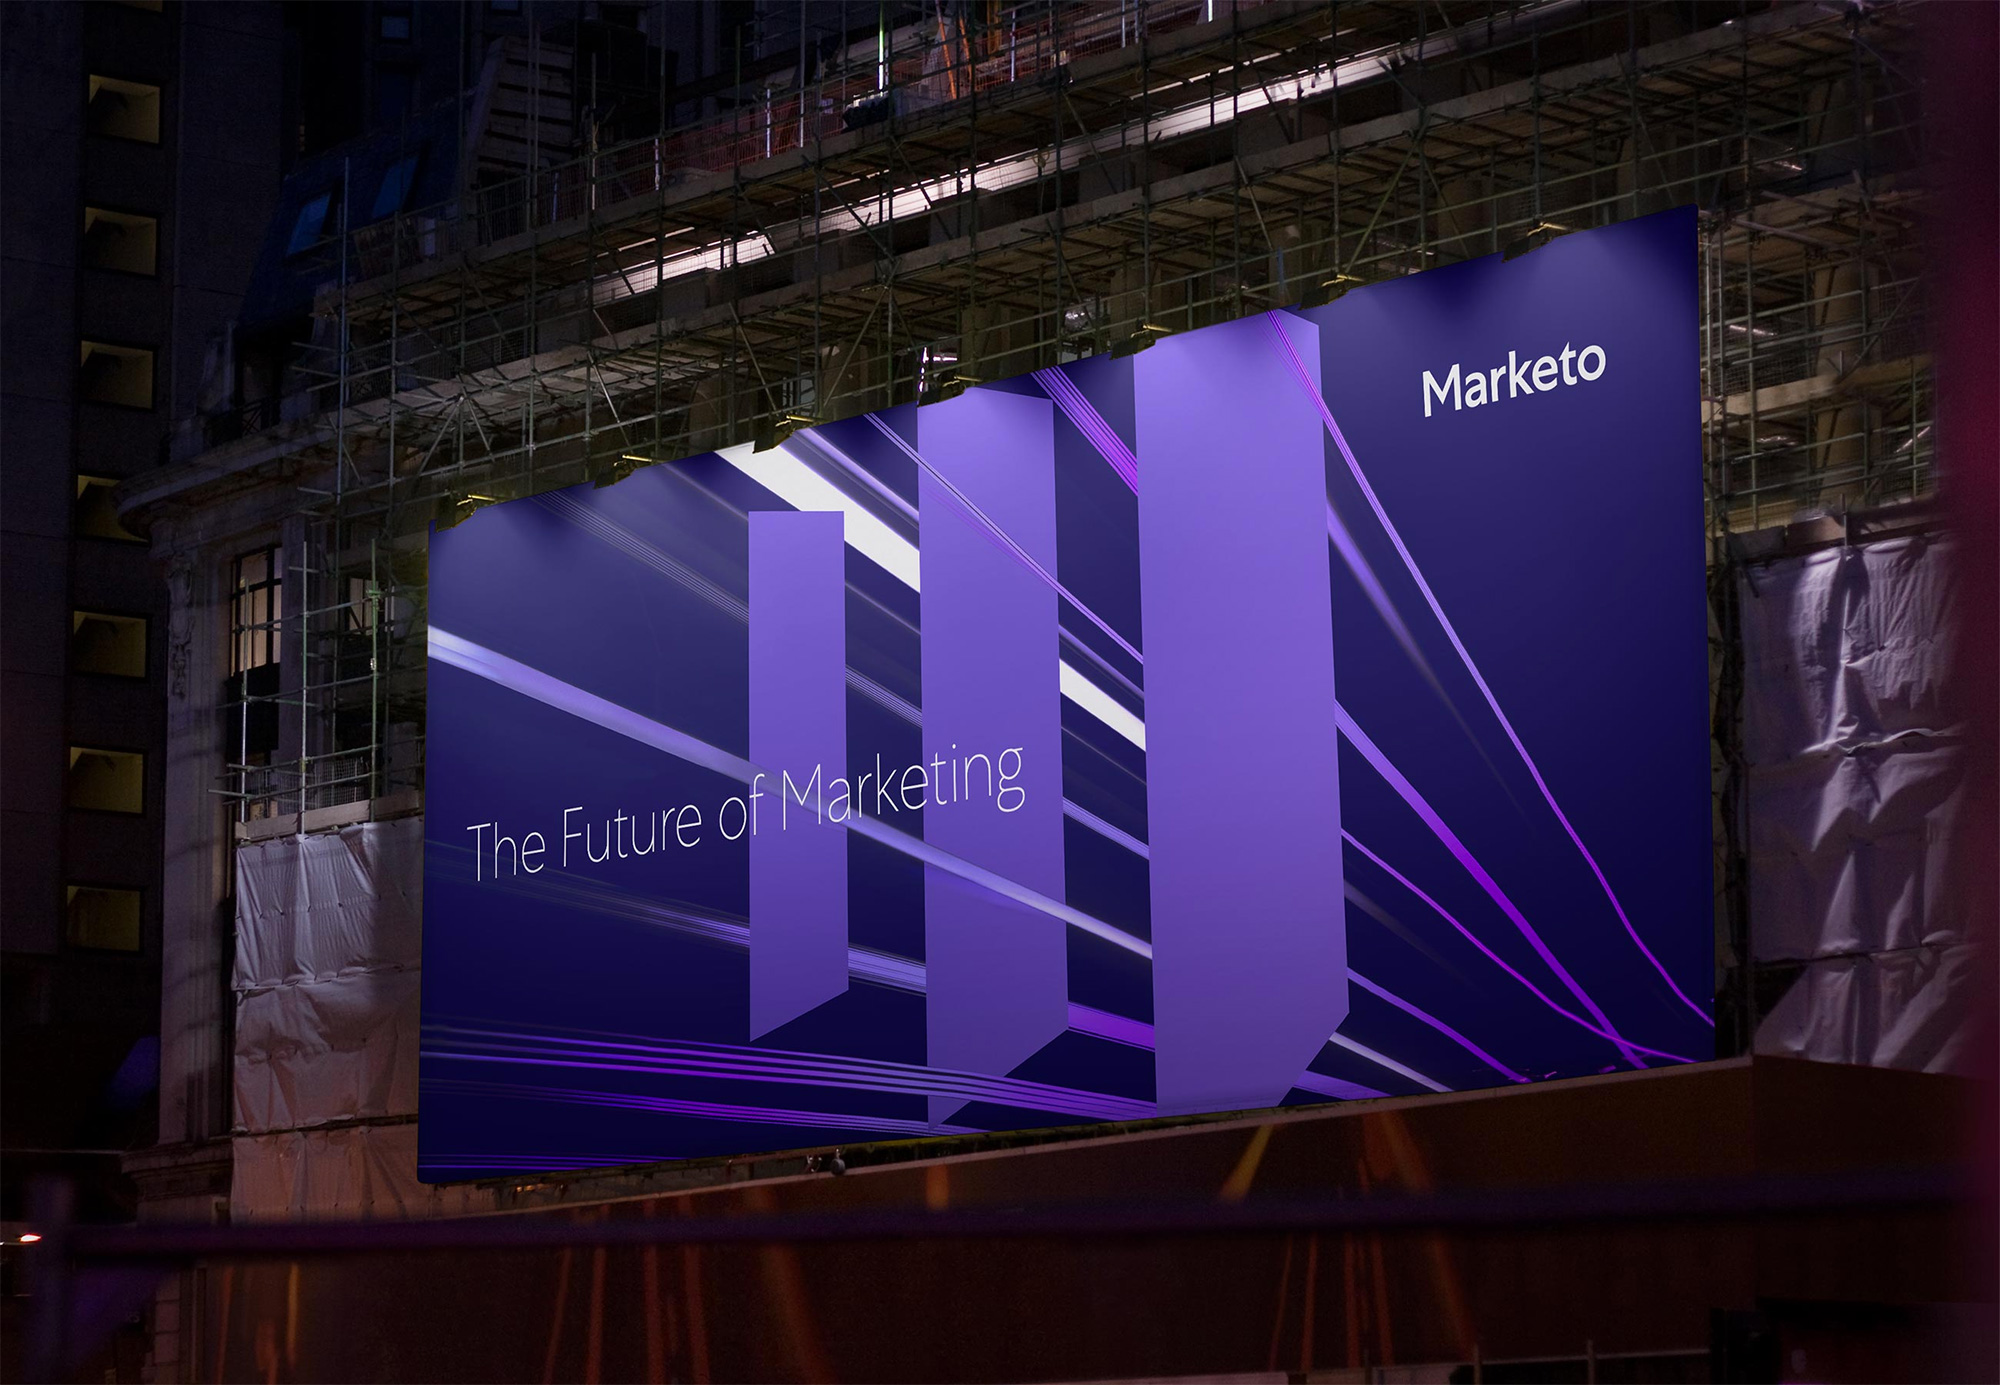 Follow-up: New Logo and Identity for Marketo by Focus Lab